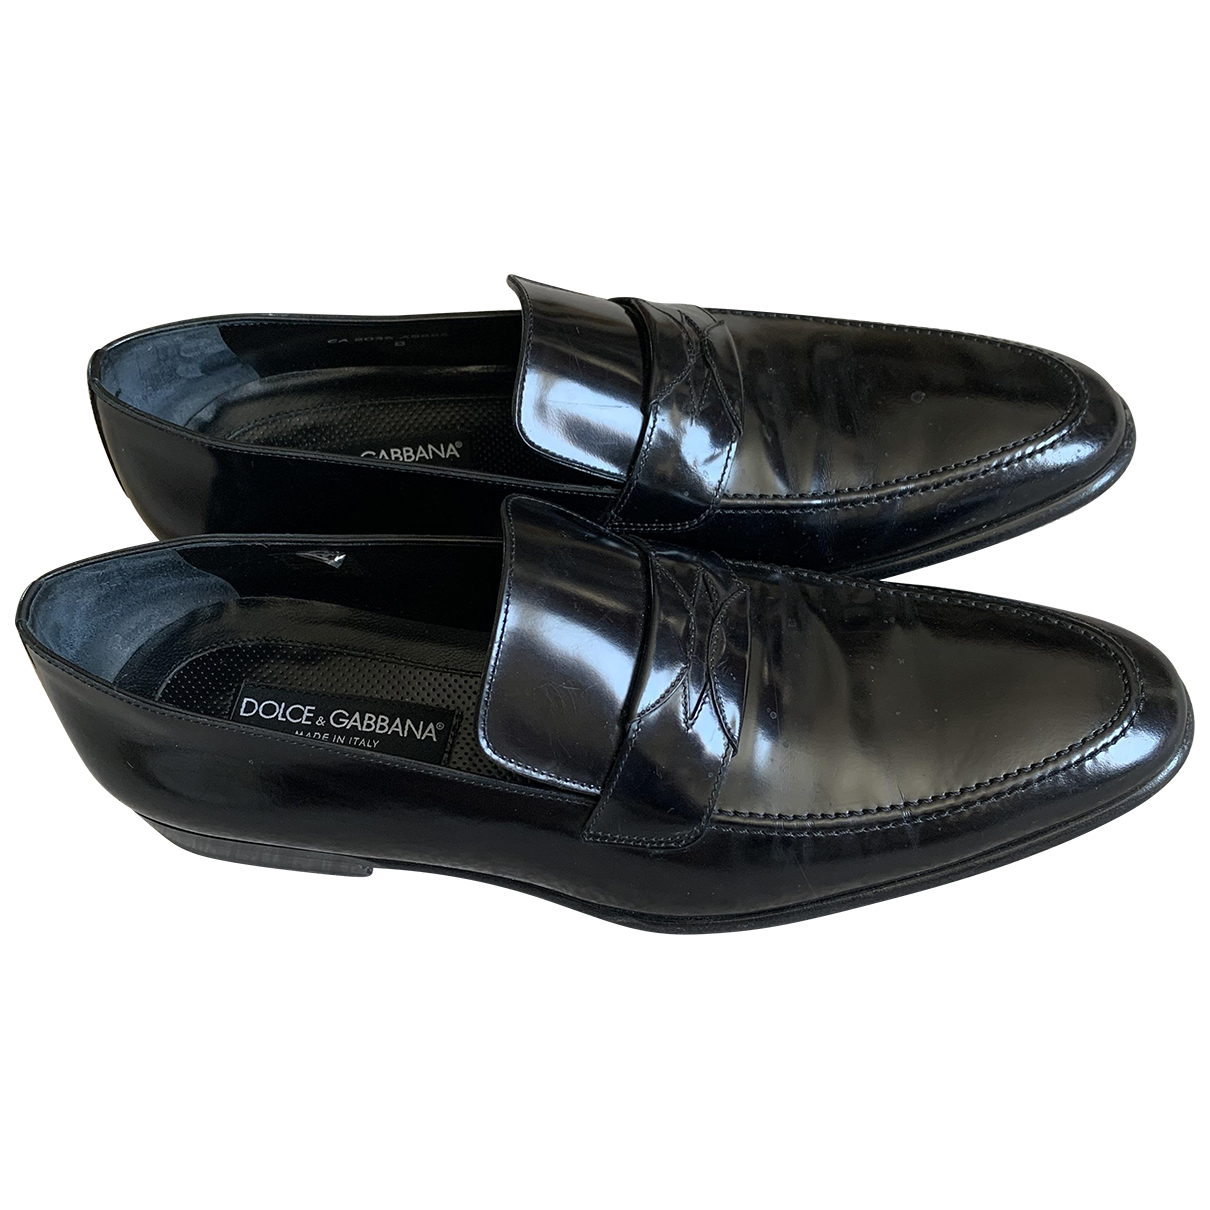 Dolce & Gabbana \N Black Leather Flats for Men 8 UK